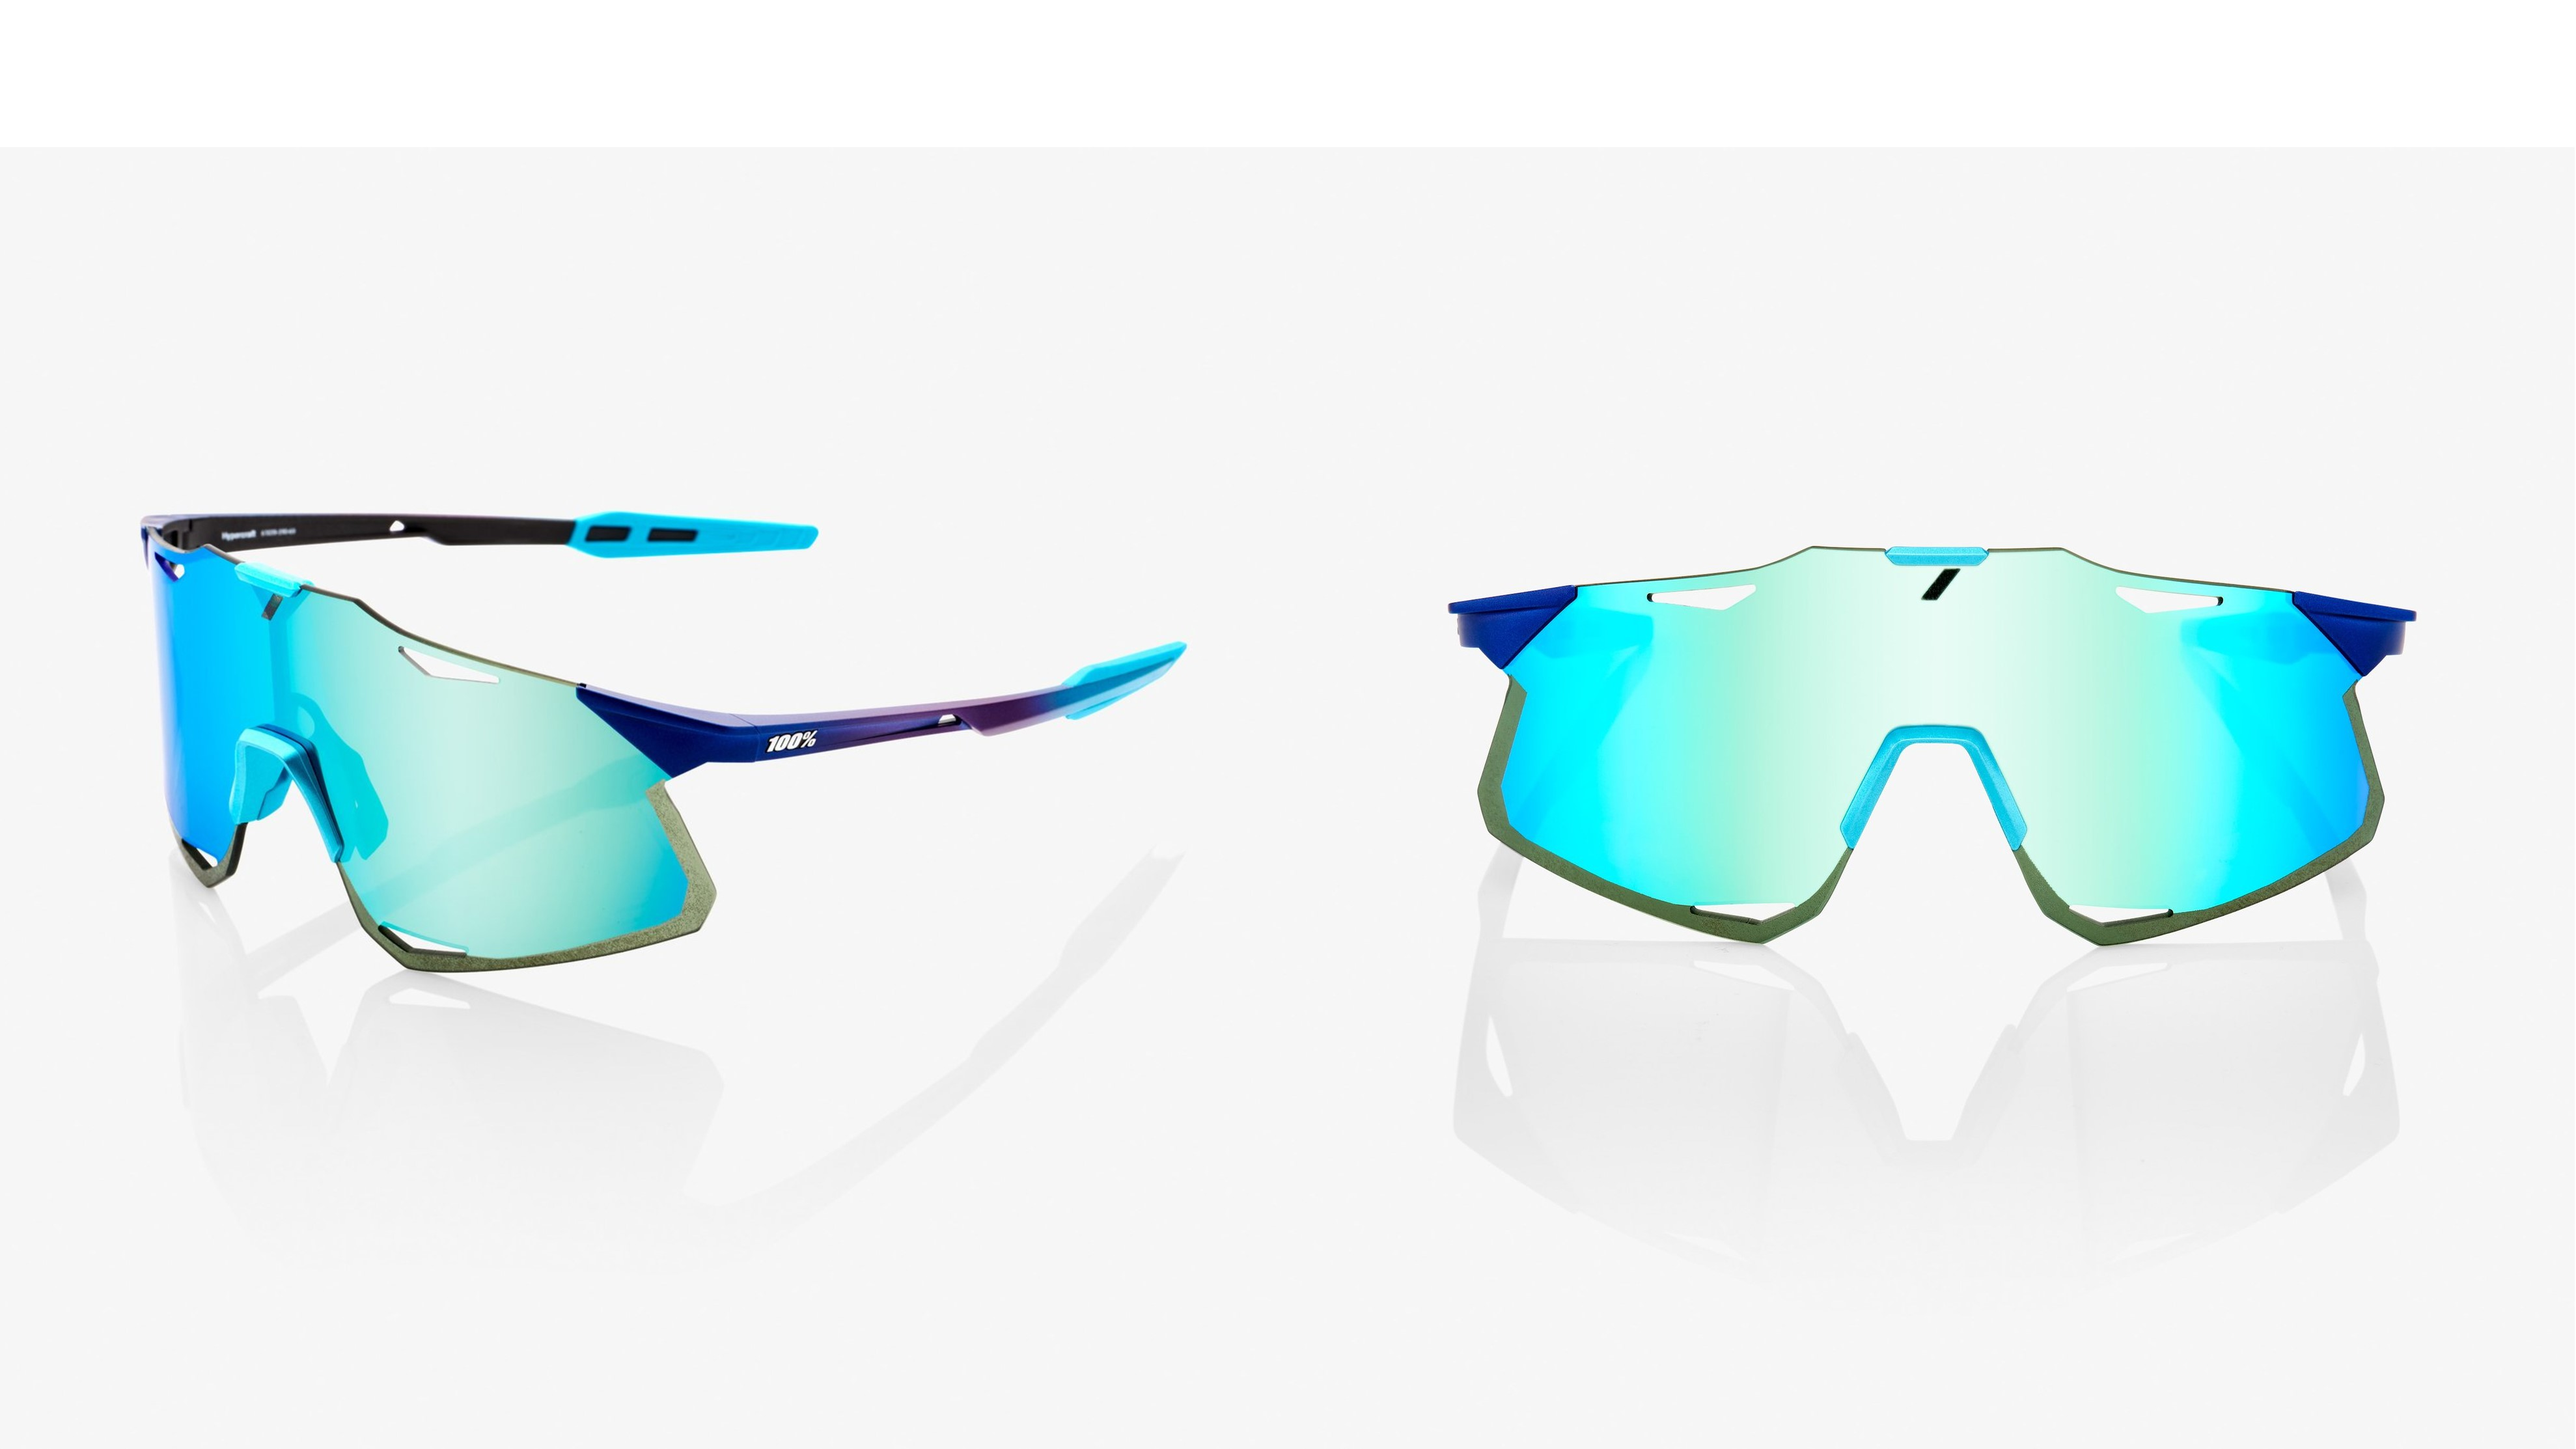 100% Hypercraft sunglasses are only 23g